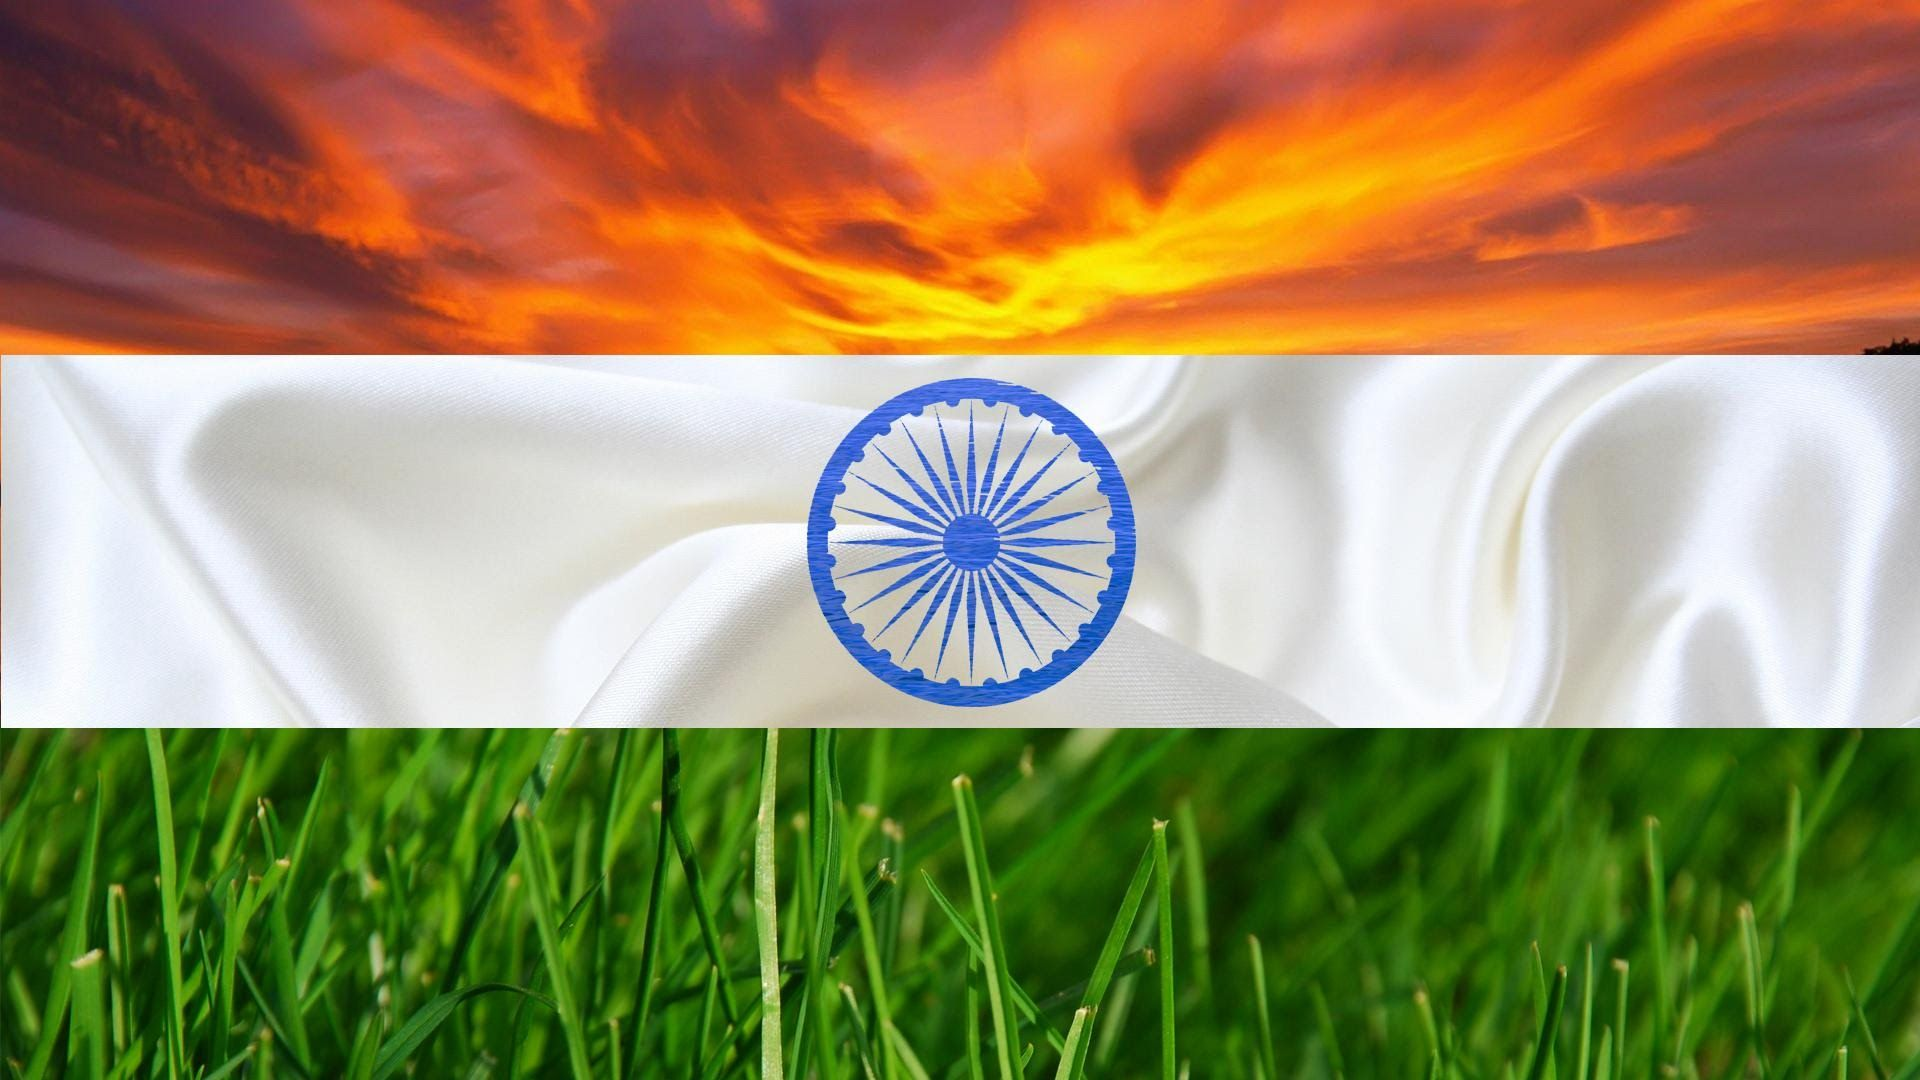 Patriotic Salute Musicipassio Pinterest Indian Flag Indian